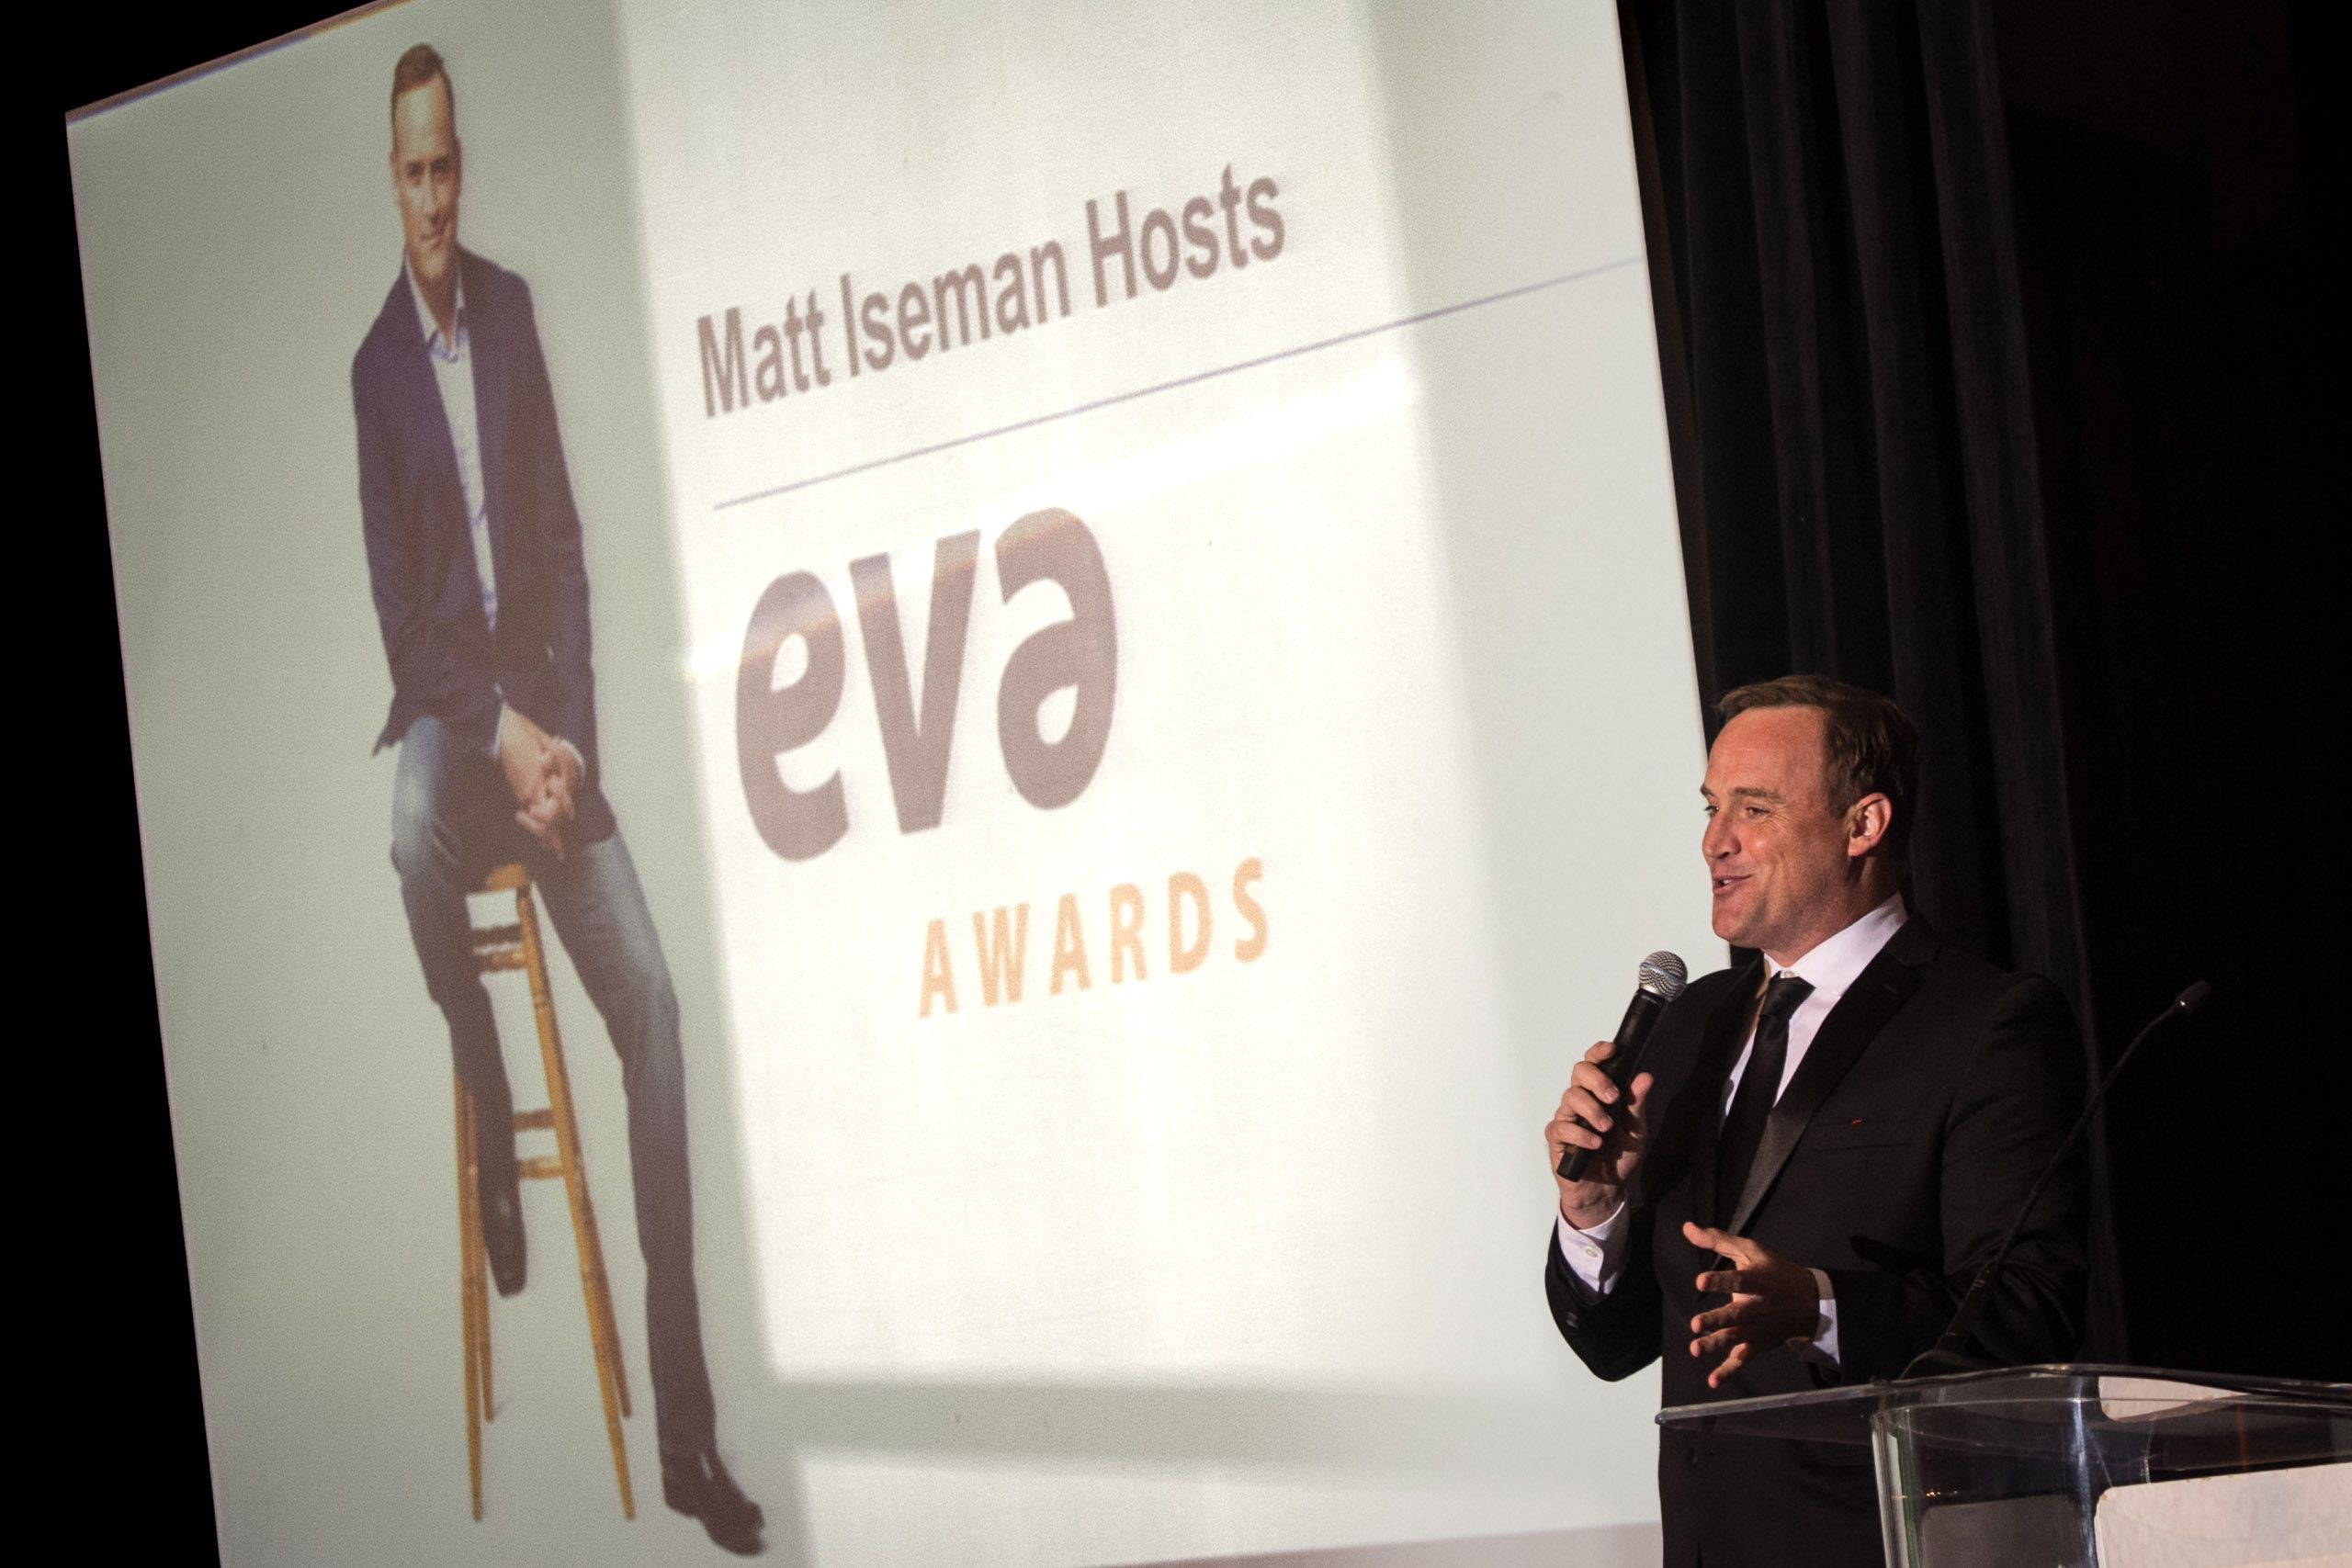 Matt Iseman hosts.jpg